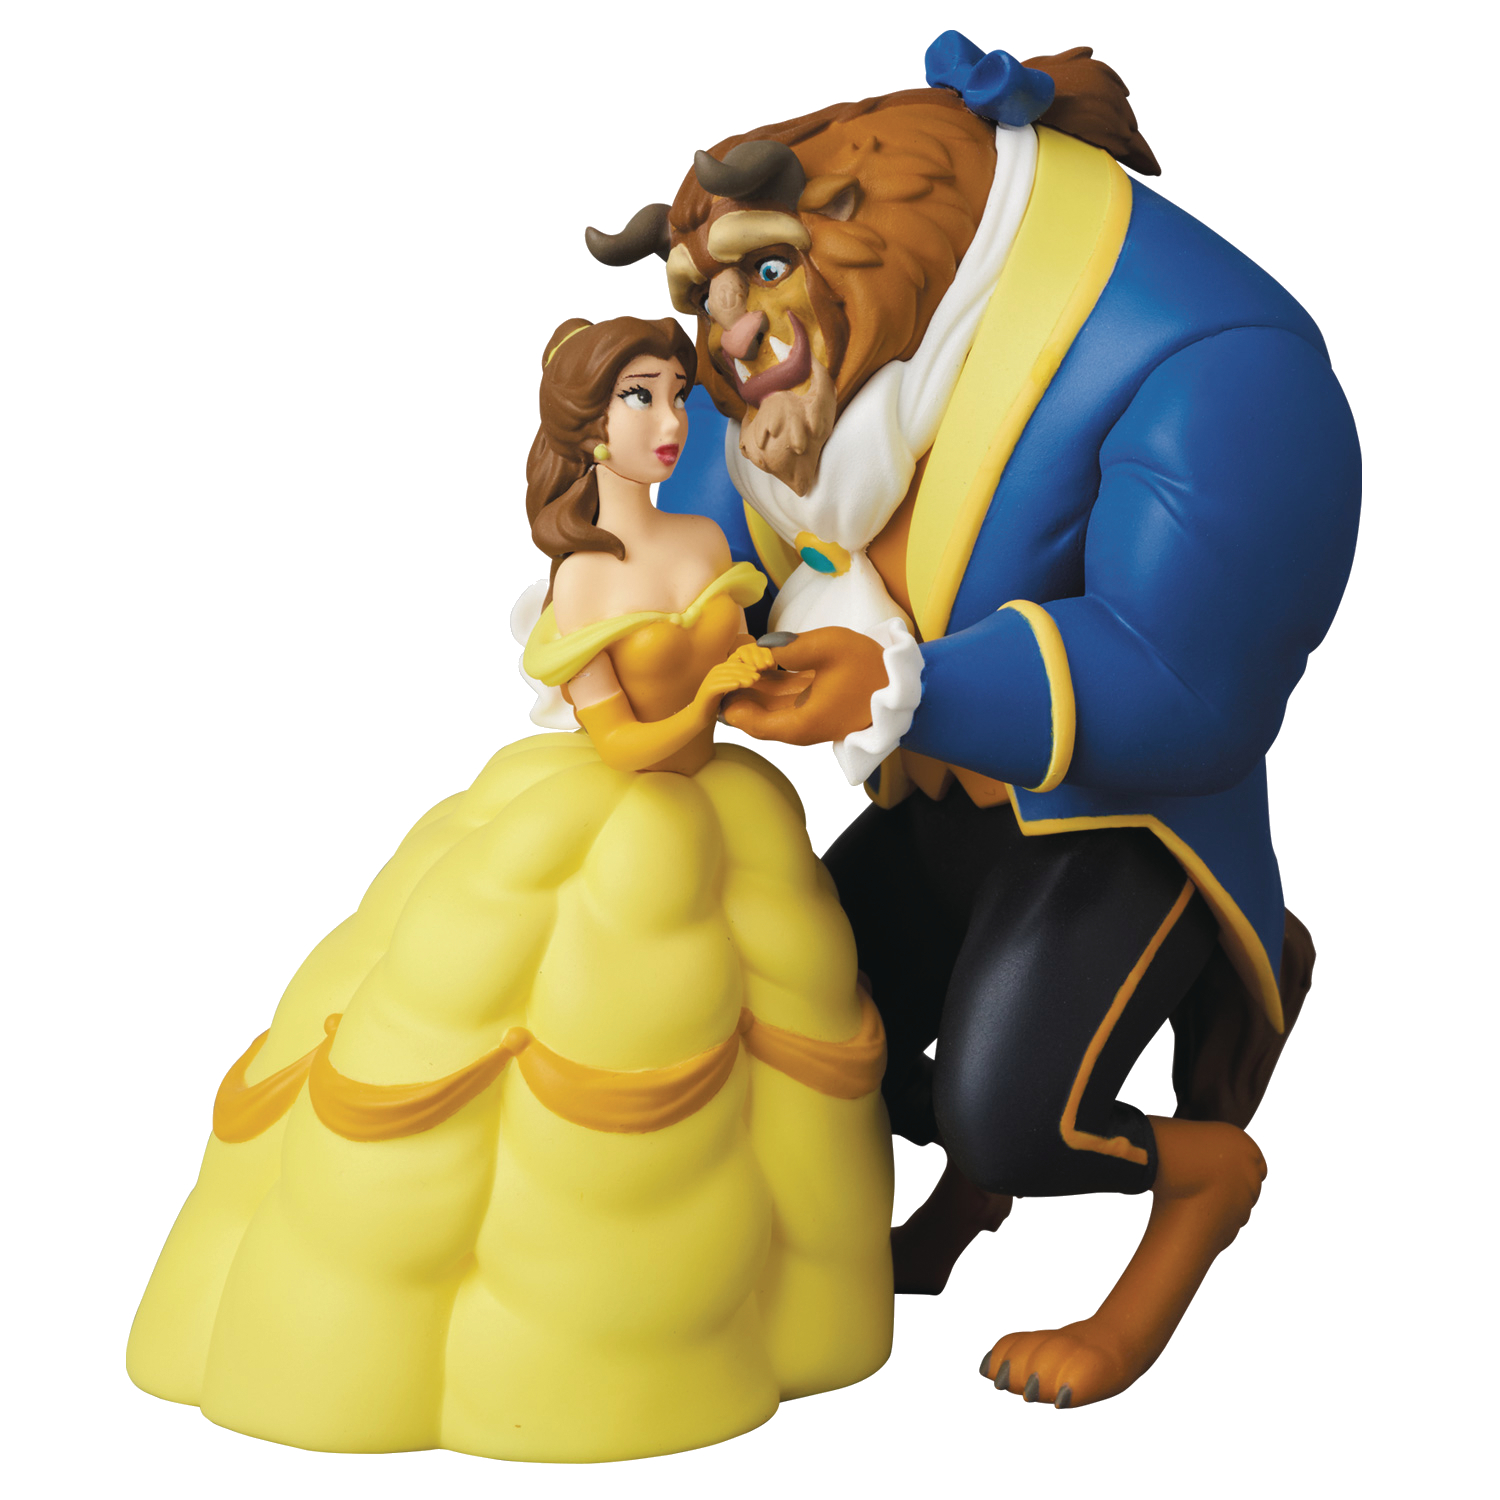 DISNEY BEAUTY & THE BEAST BELLE & BEAST UDF FIG SERIES 7